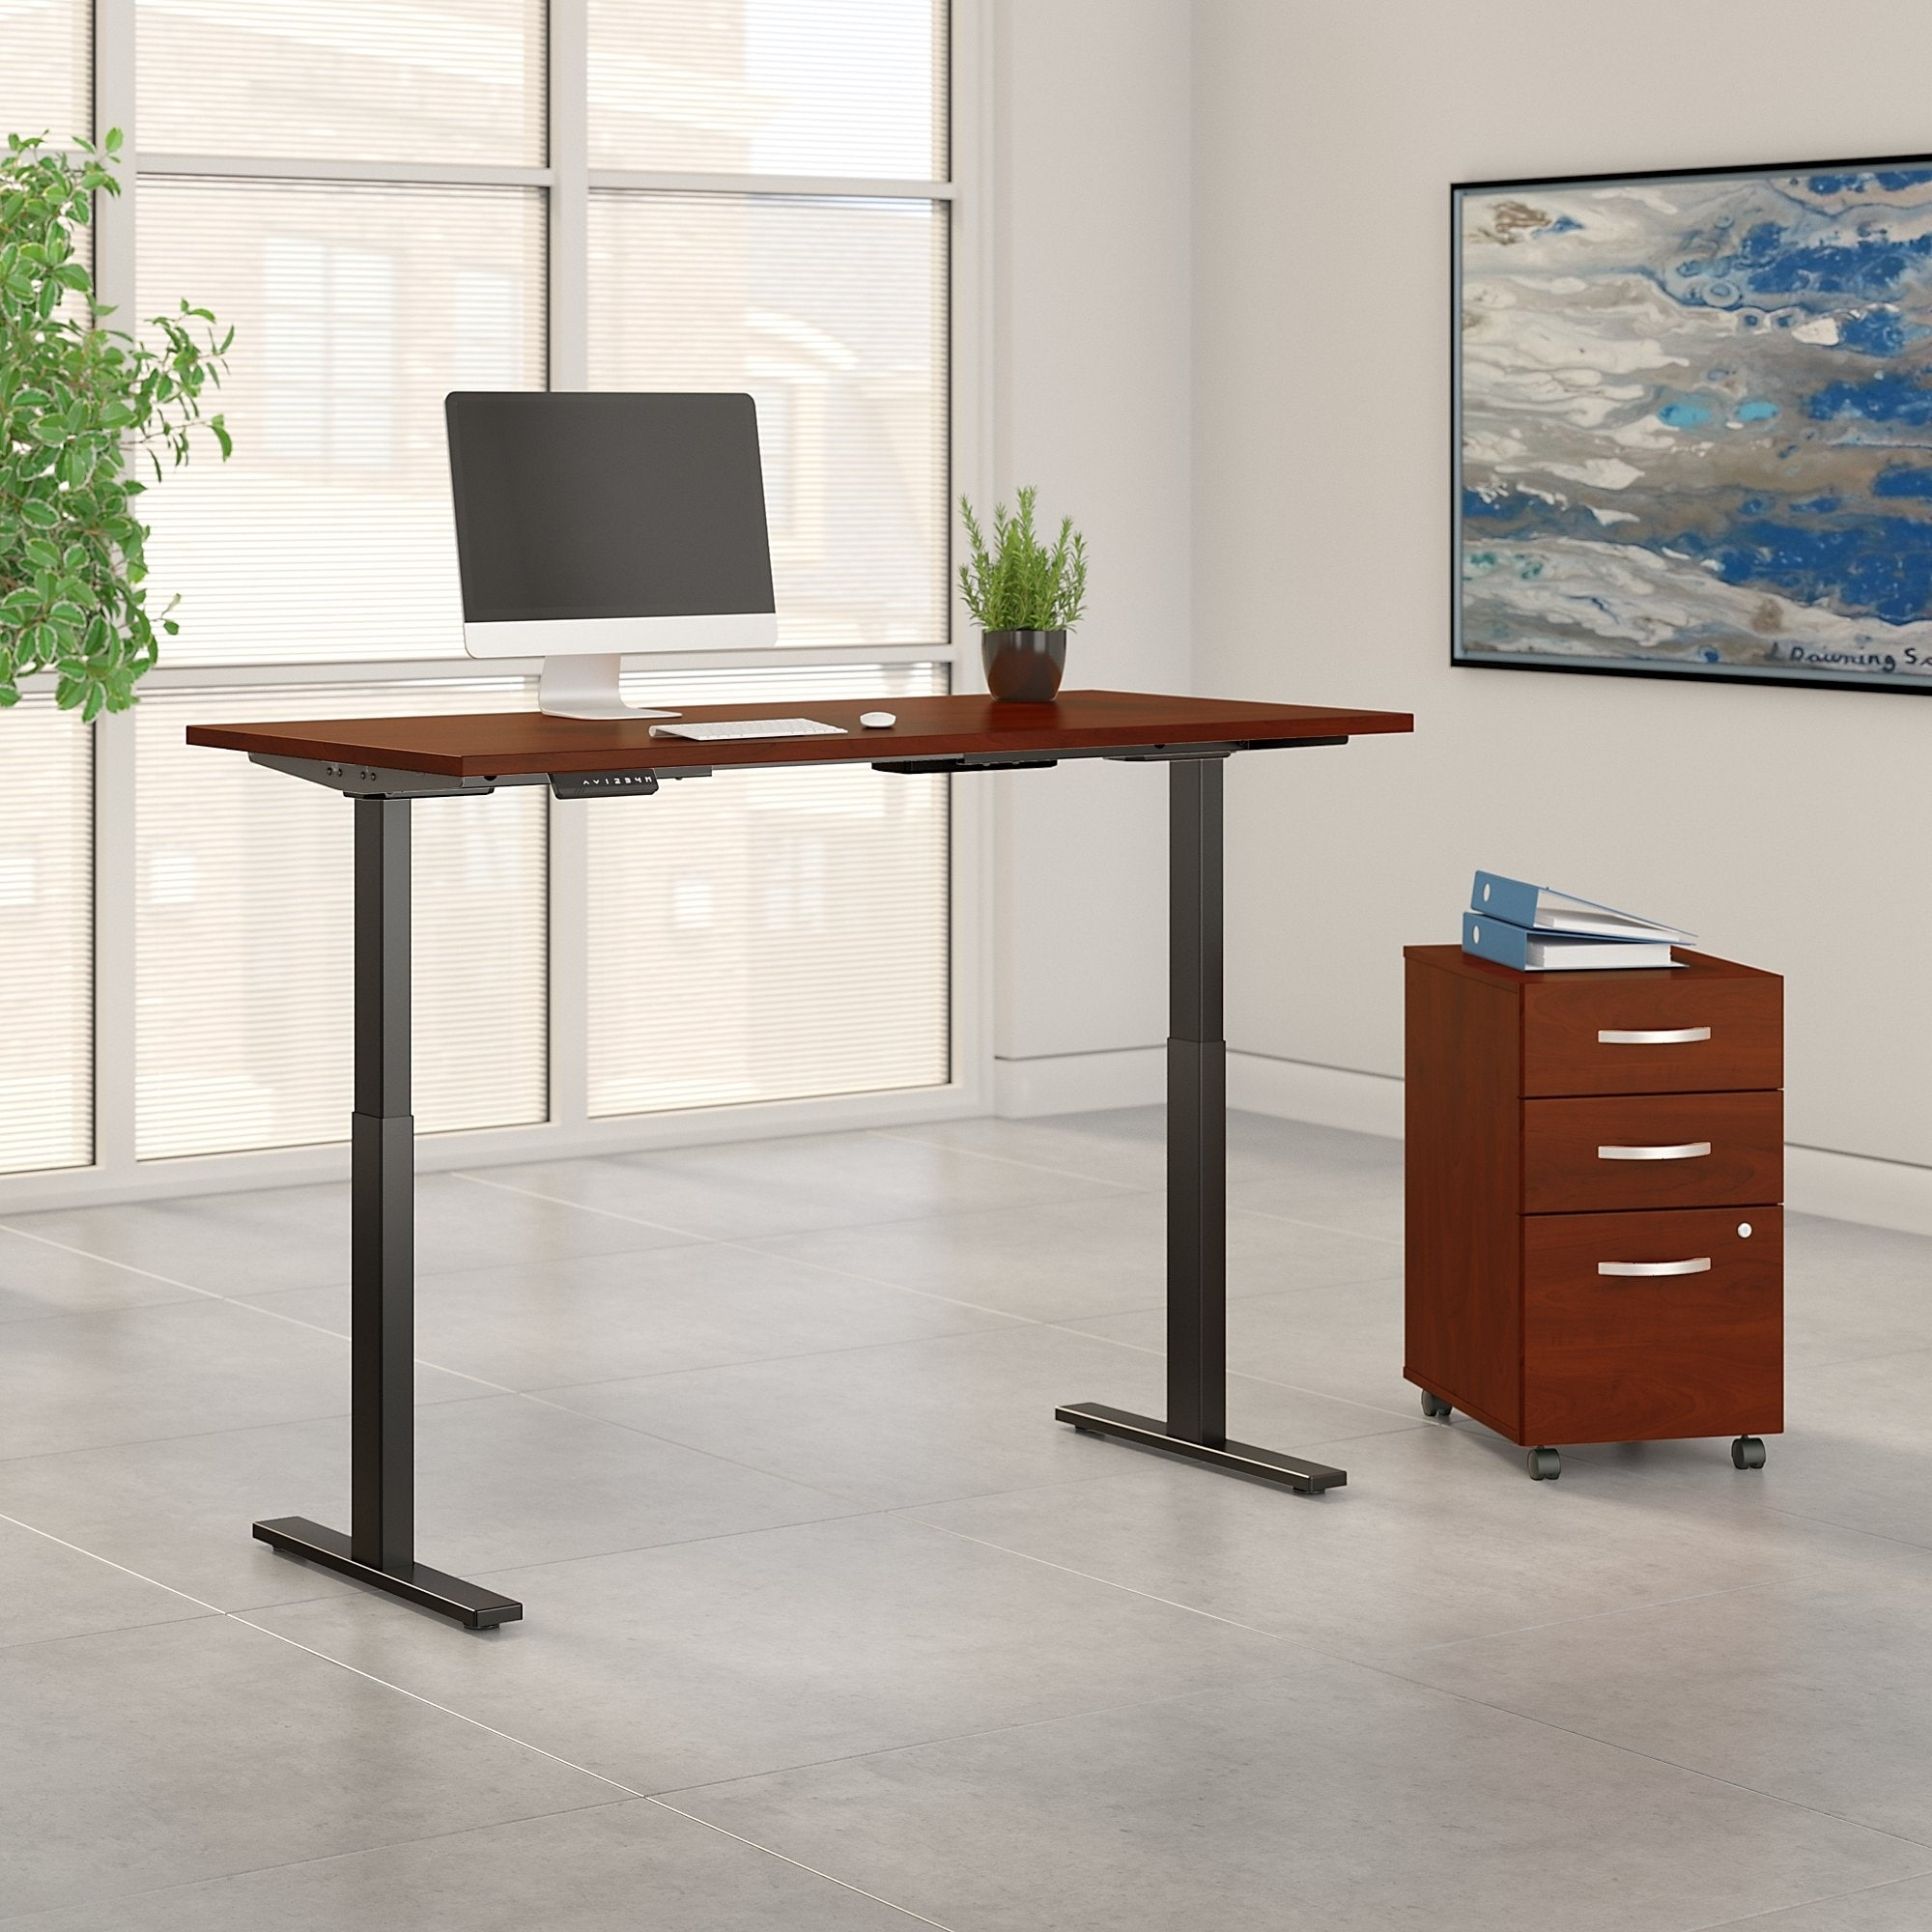 Swell Move 60 Series By 60W Height Adjustable Standing Desk With Storage Home Interior And Landscaping Elinuenasavecom